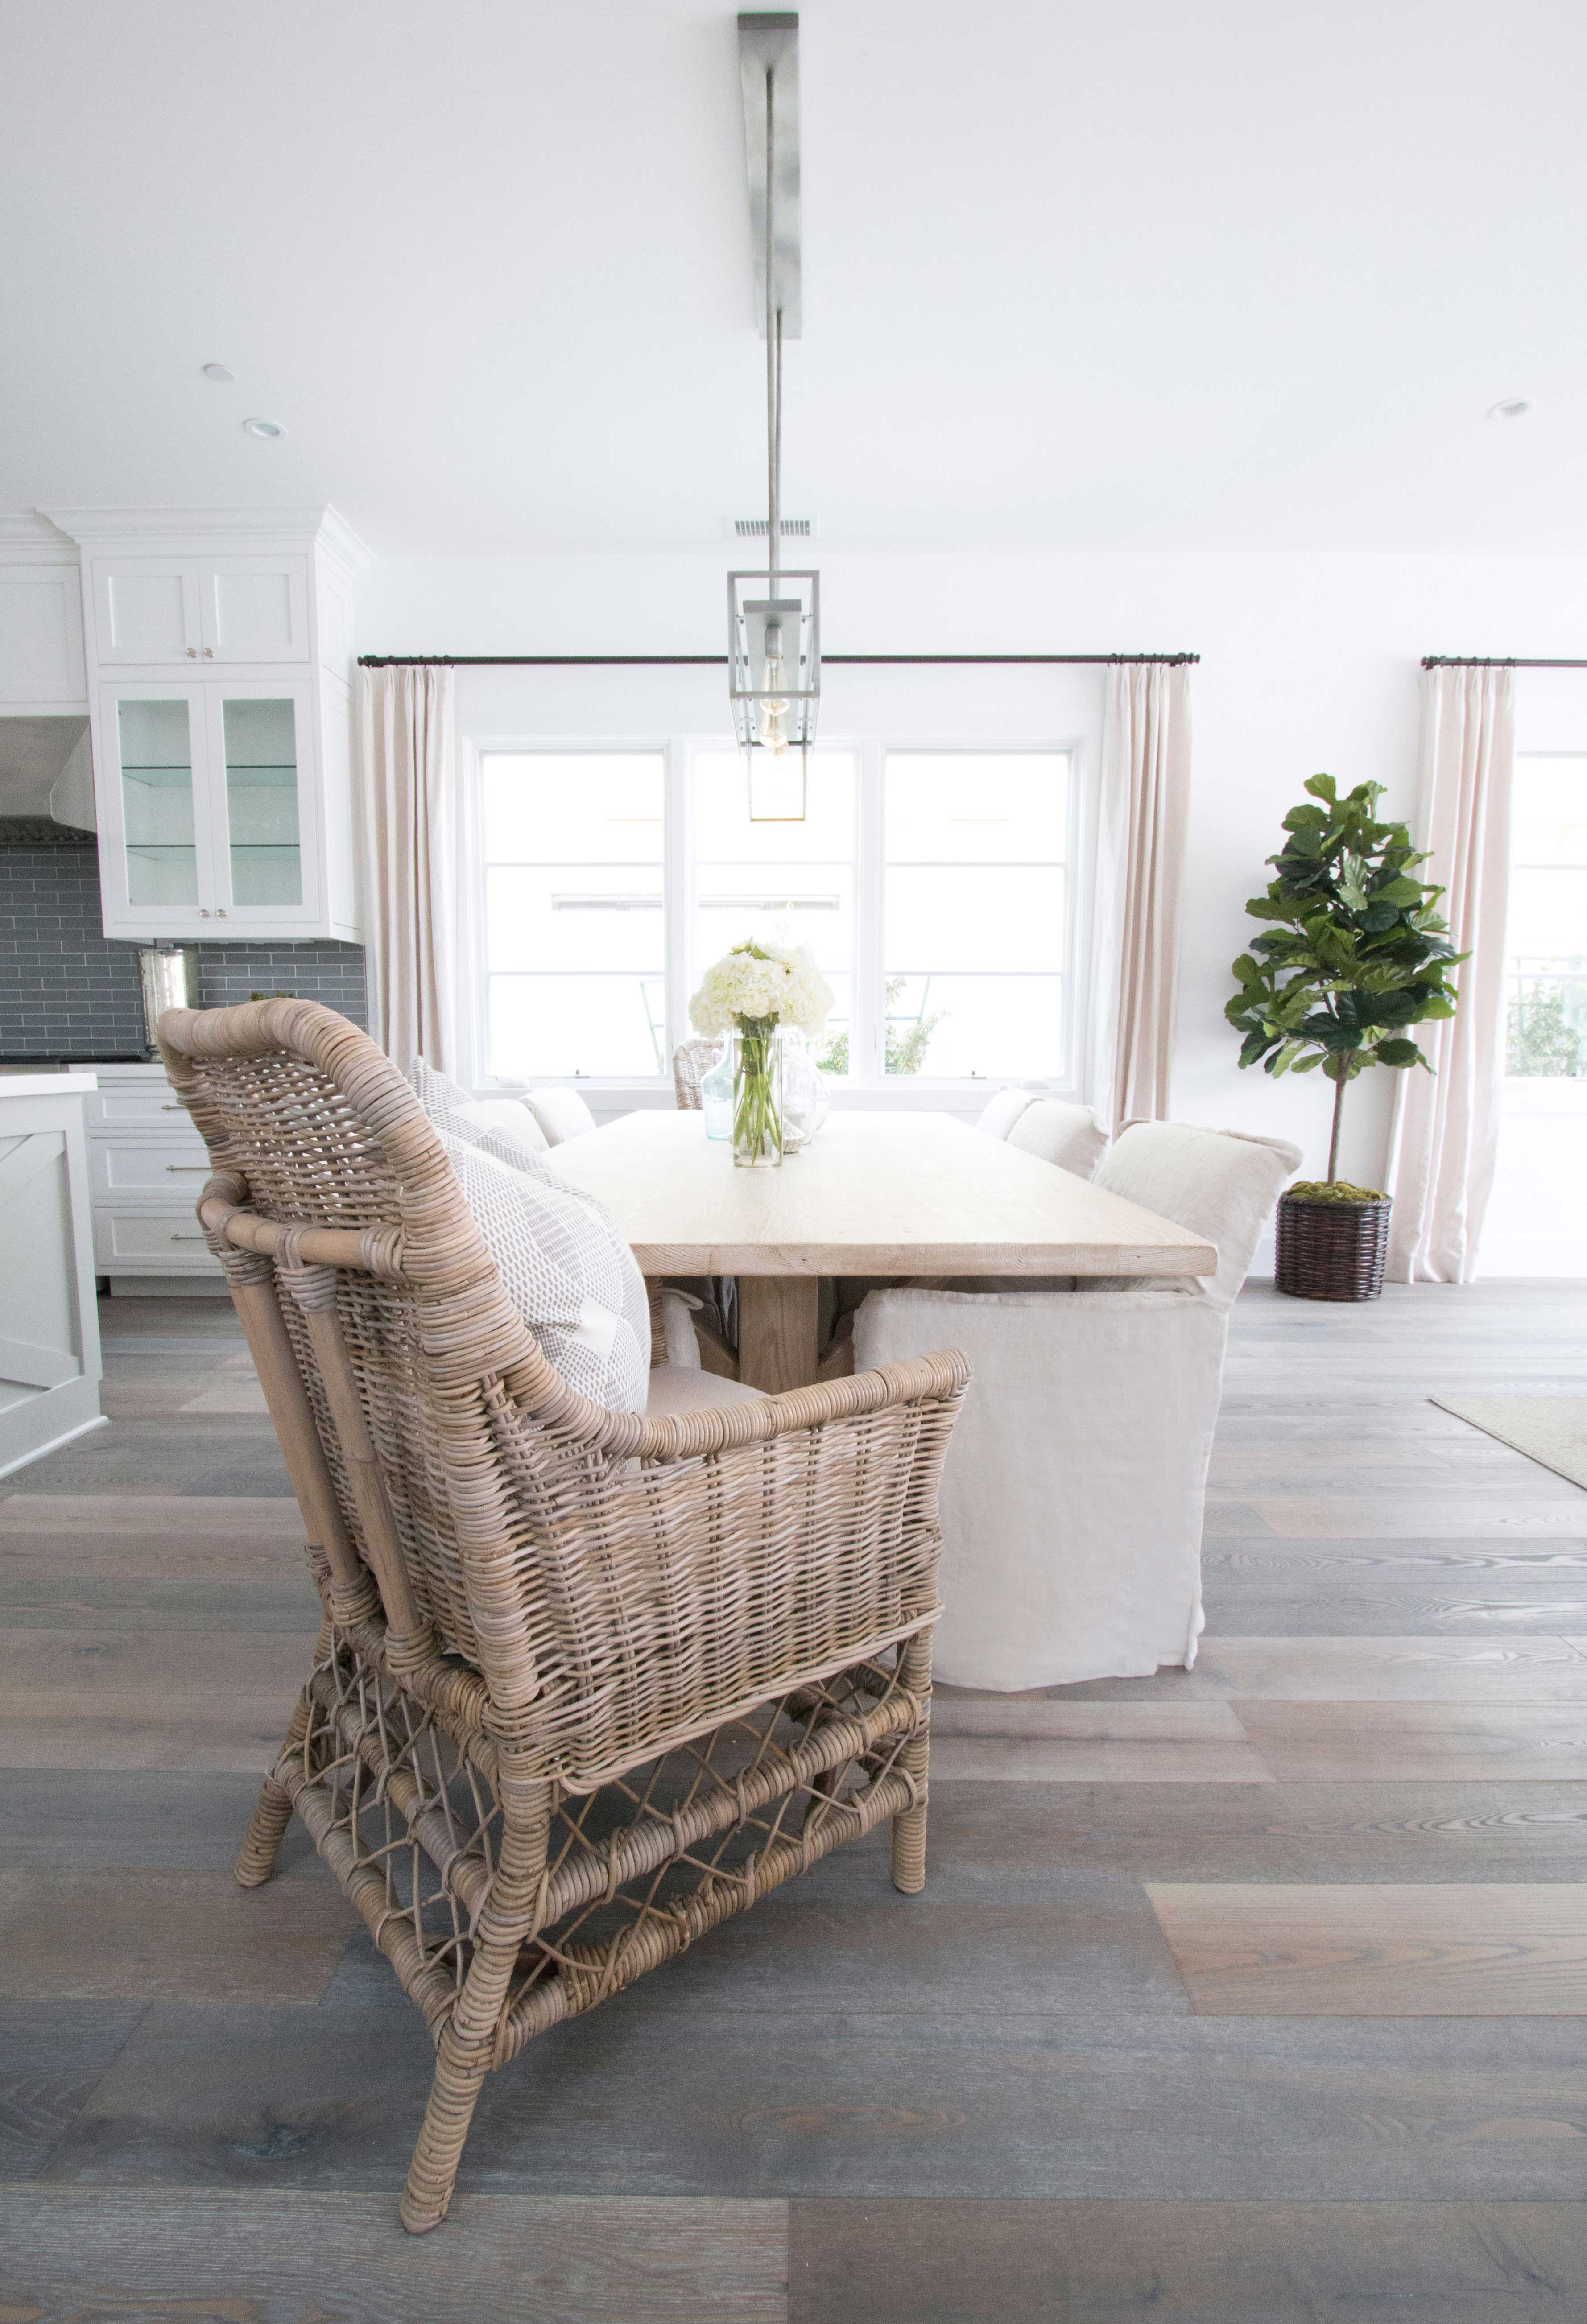 1_blackband_design_project_west_bay_dining_room_5